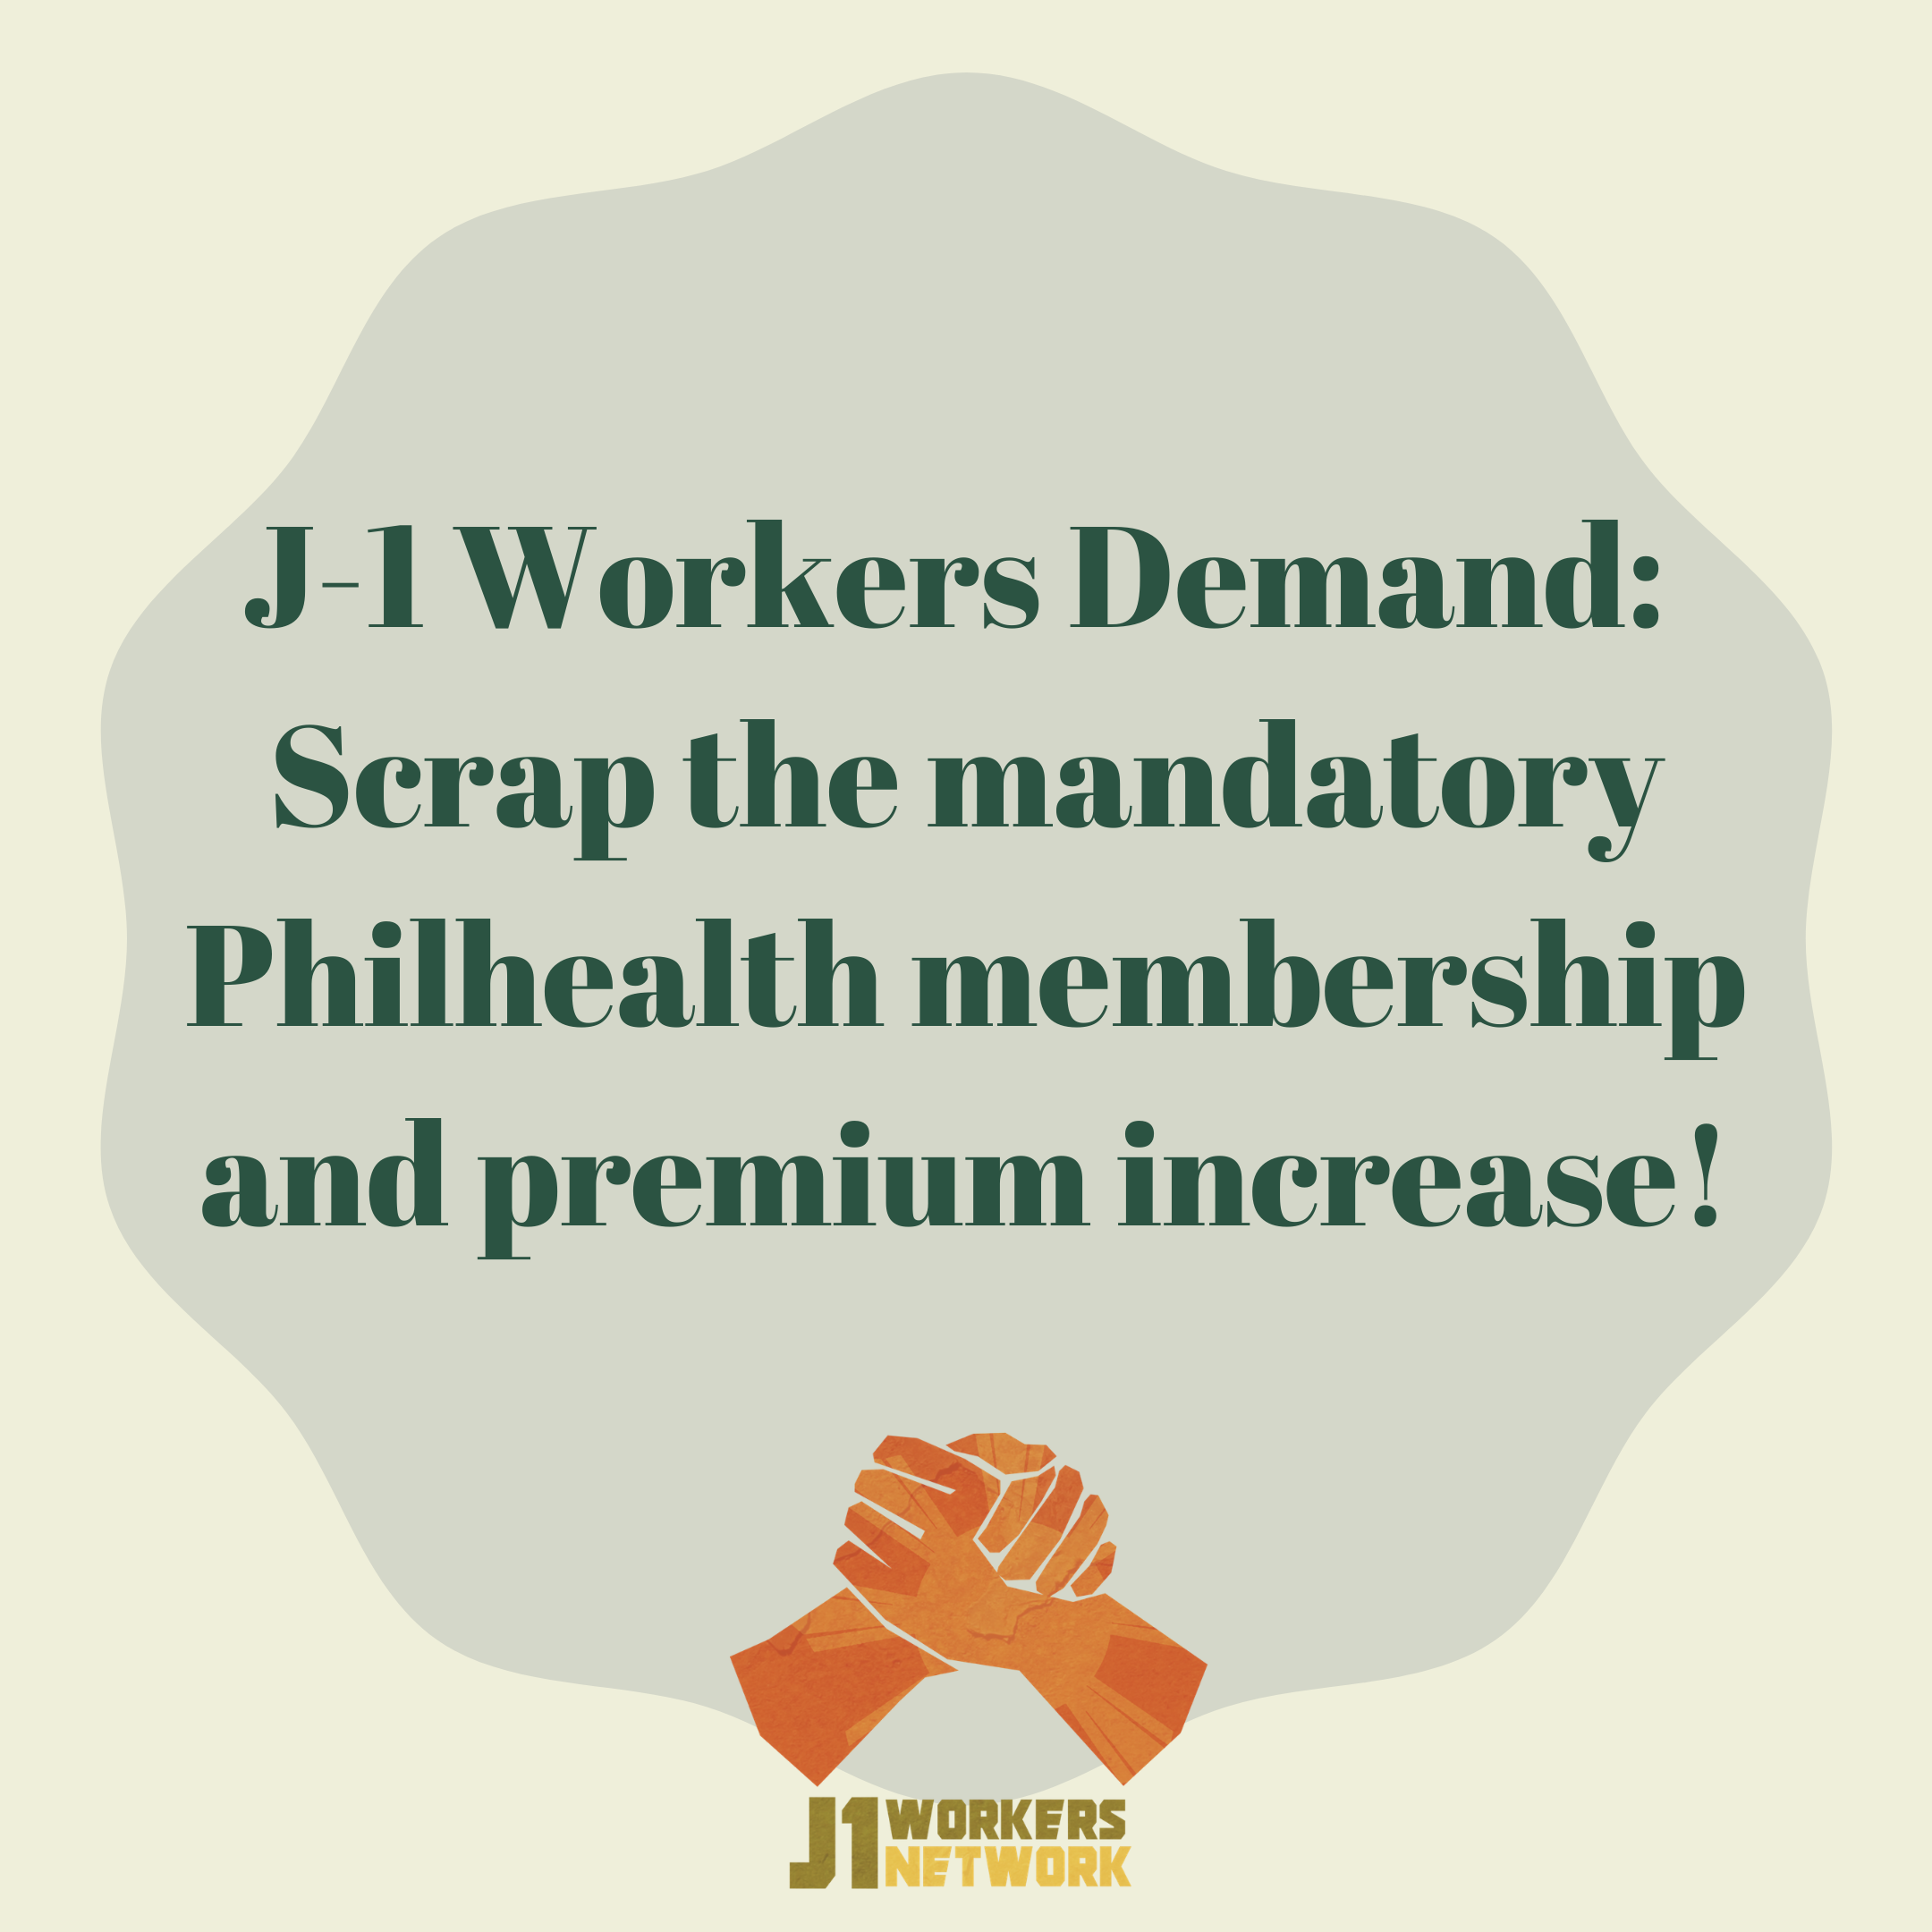 J-1 Workers_ Scrap the mandatory Philhealth membership and premium increase!